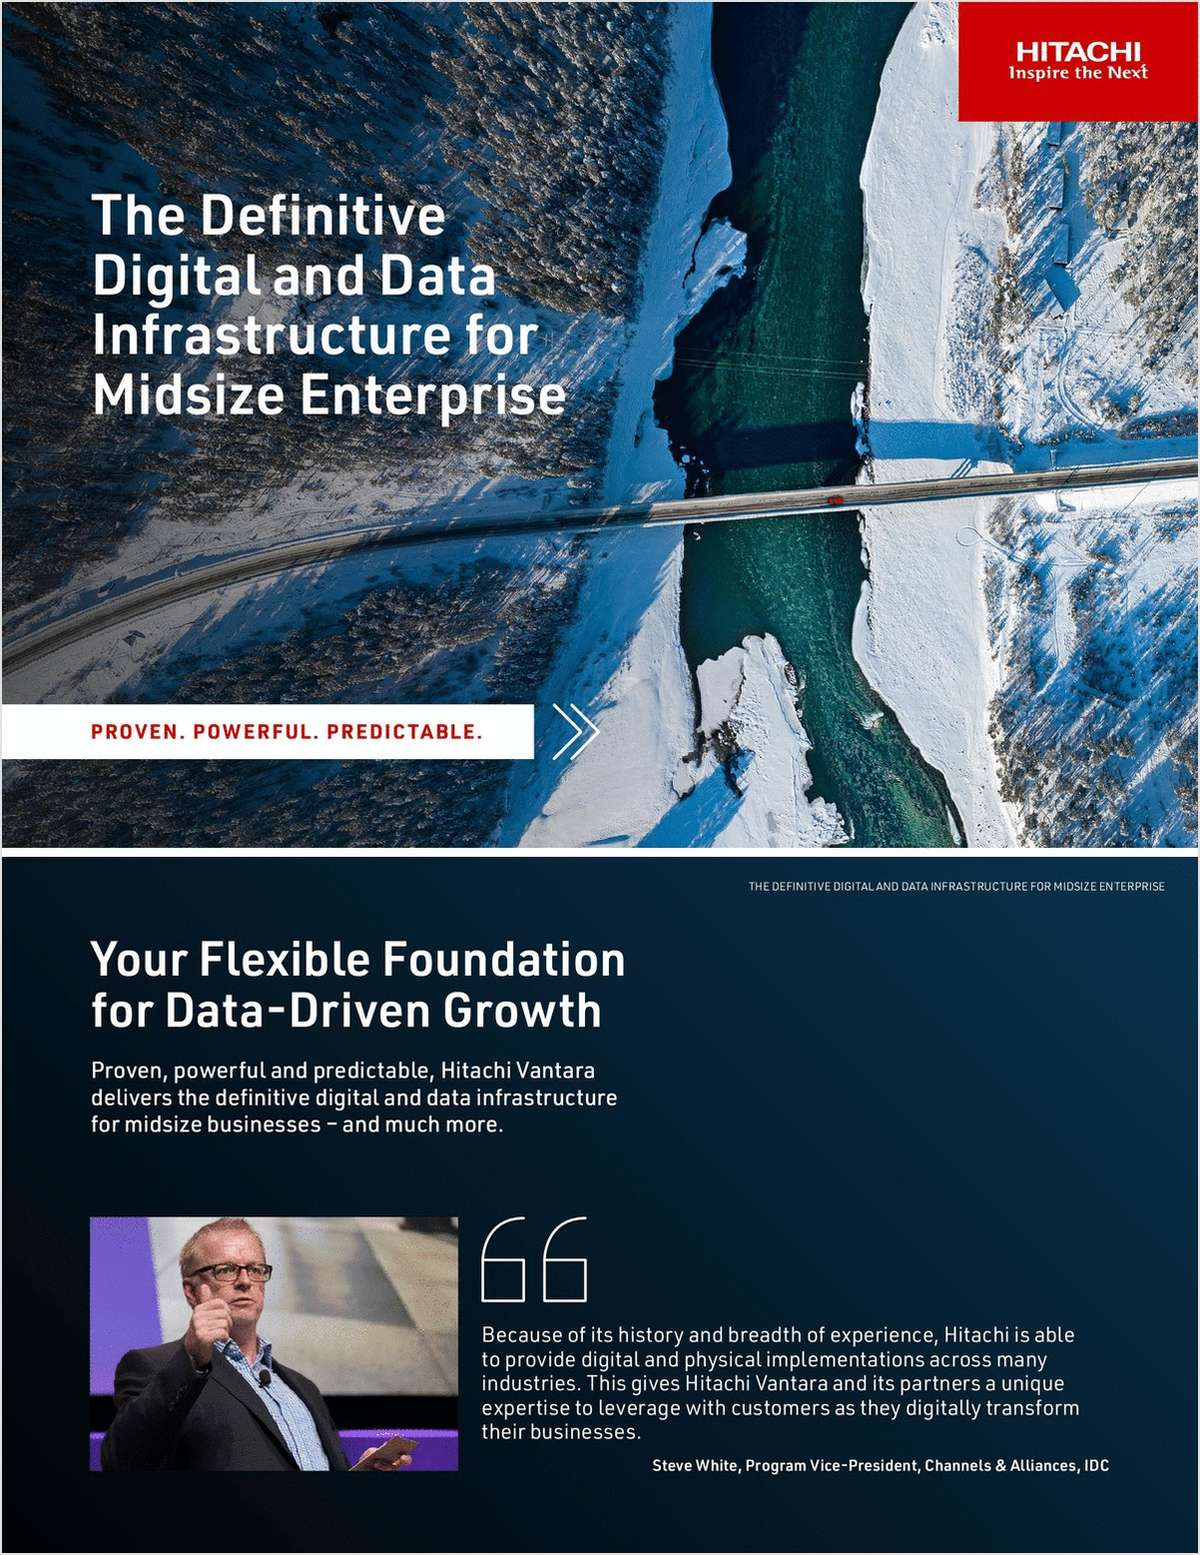 The Definitive Digital and Data Infrastructure for Midsize Enterprise